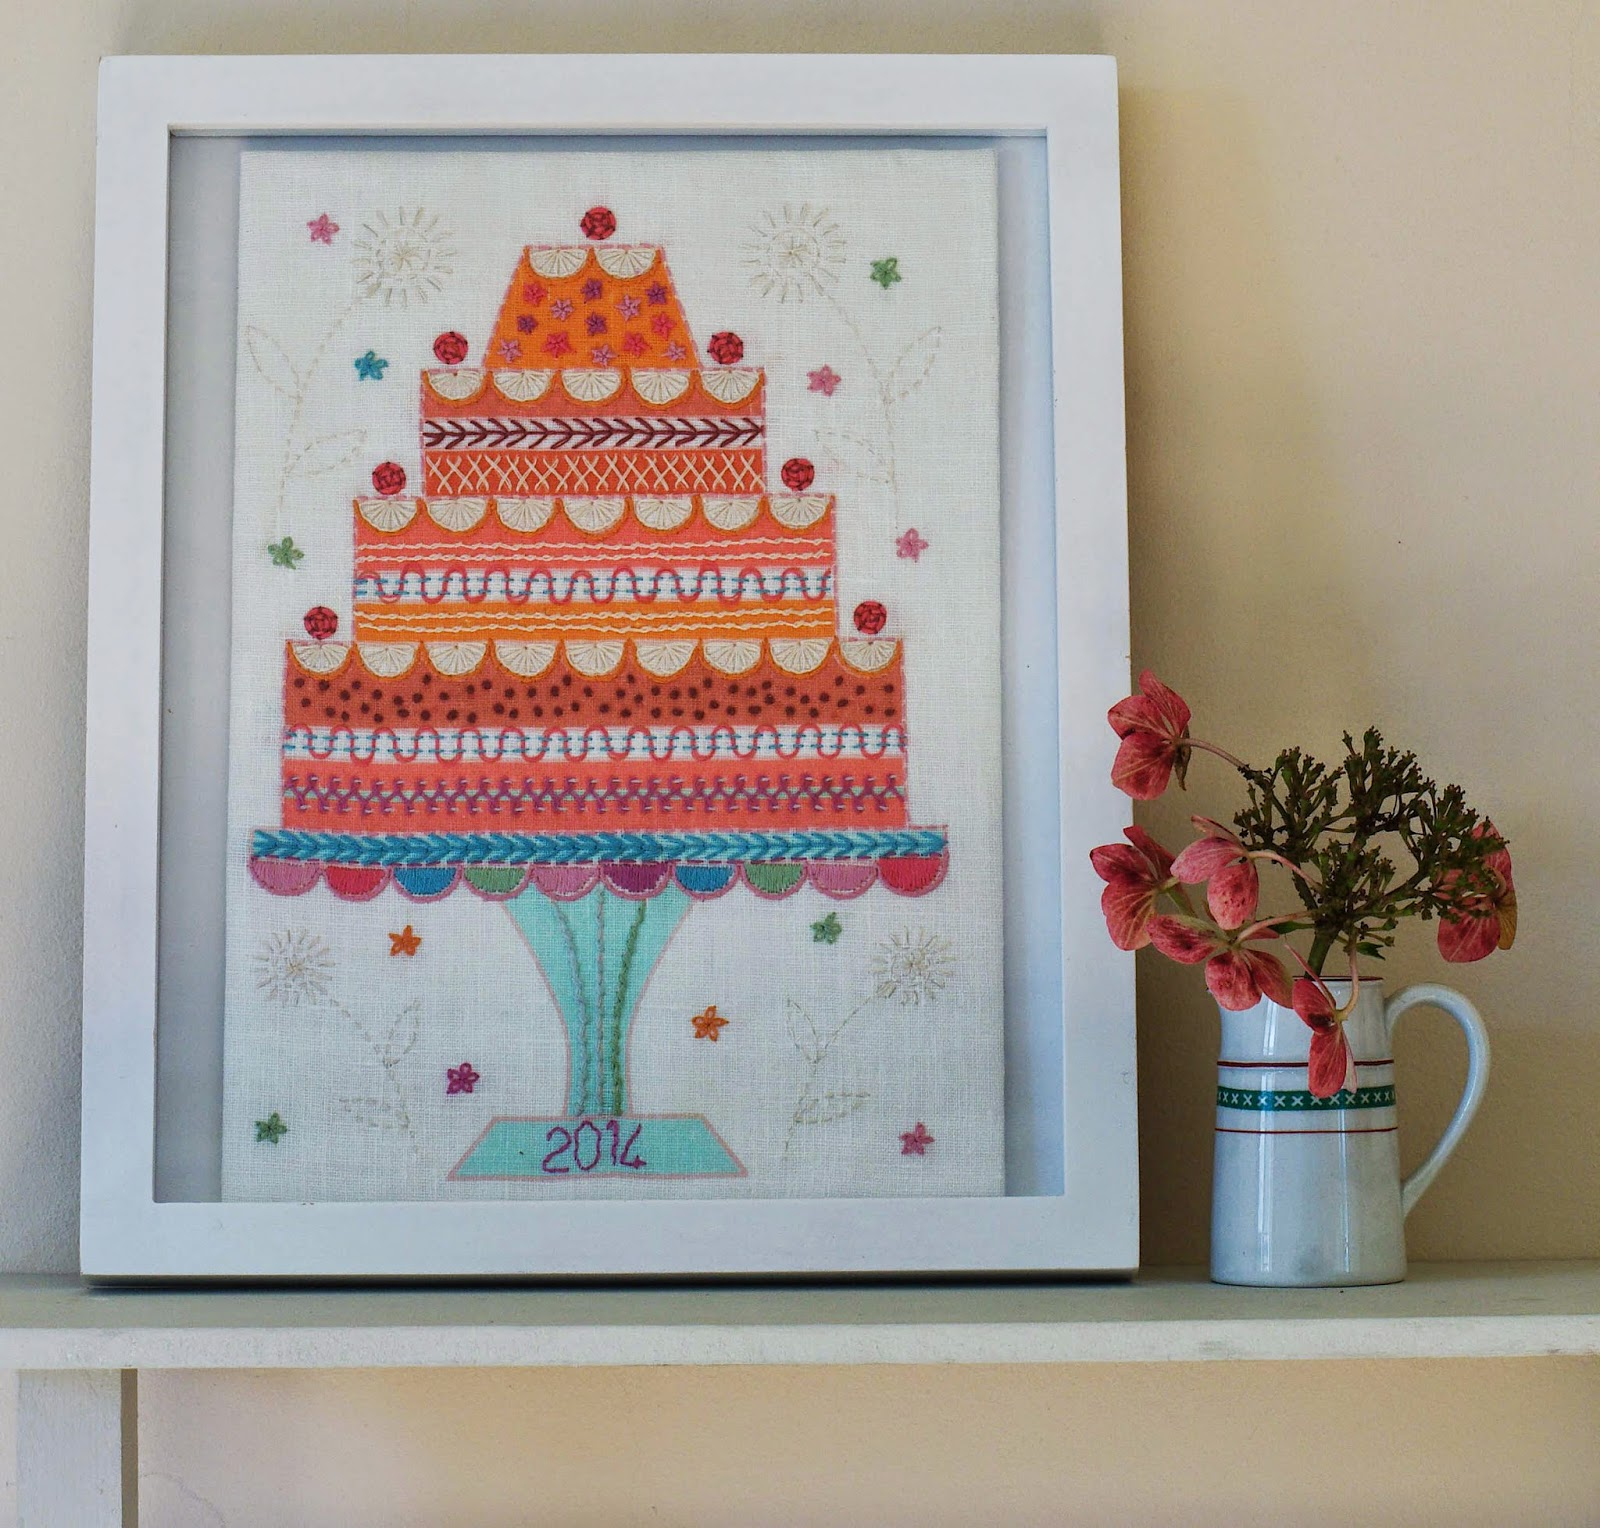 Celebration Cake Embroidery Kit Framed in a standard frame